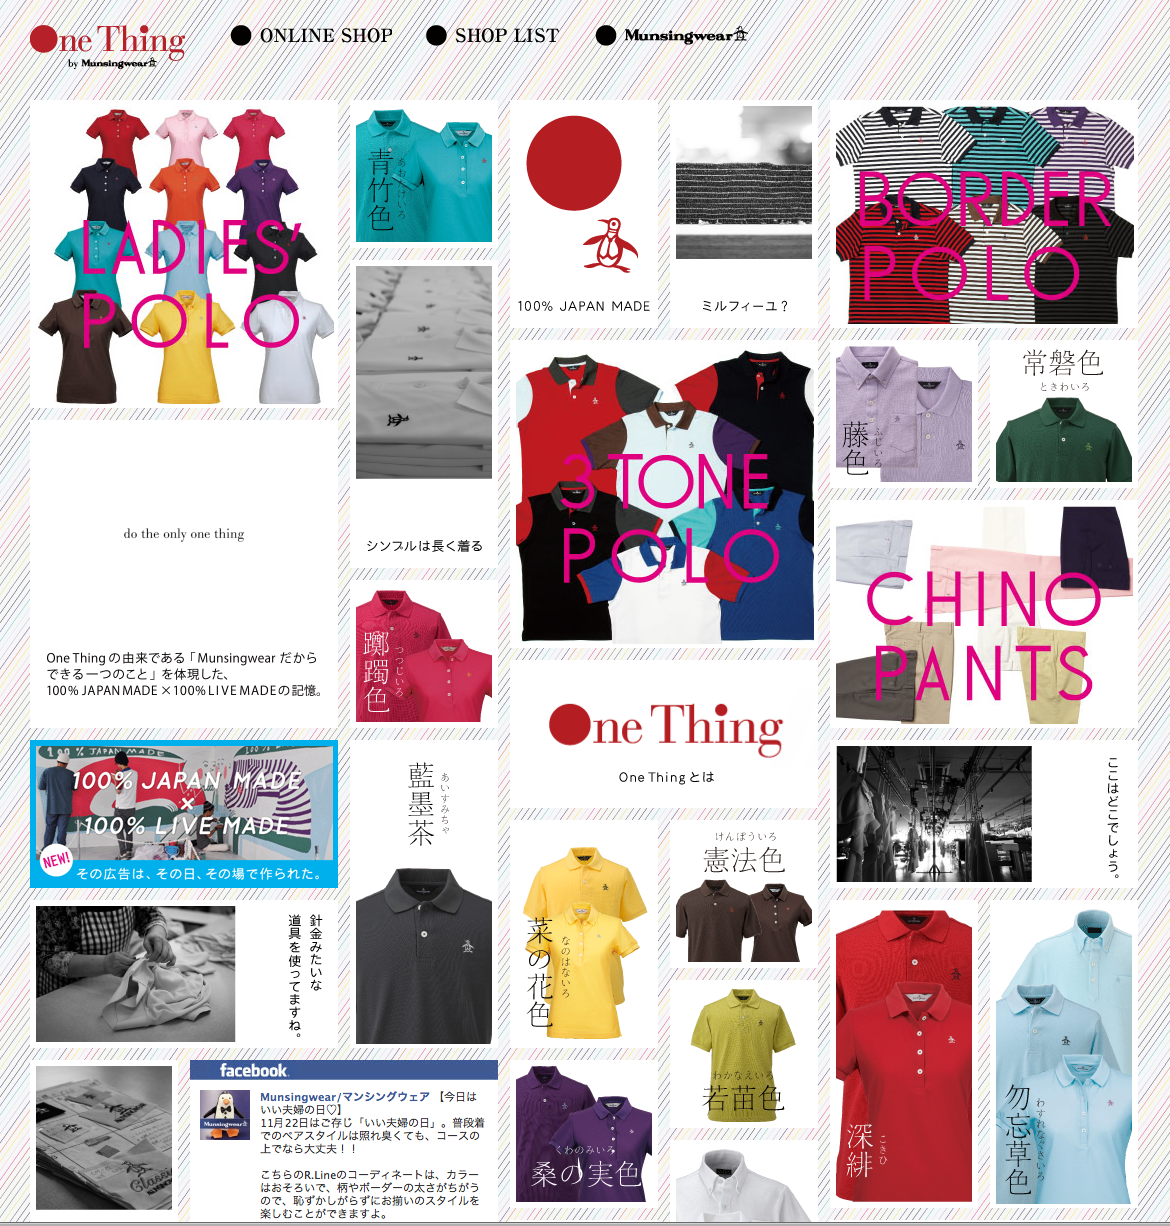 20one-thing-by-munsingwear-2012